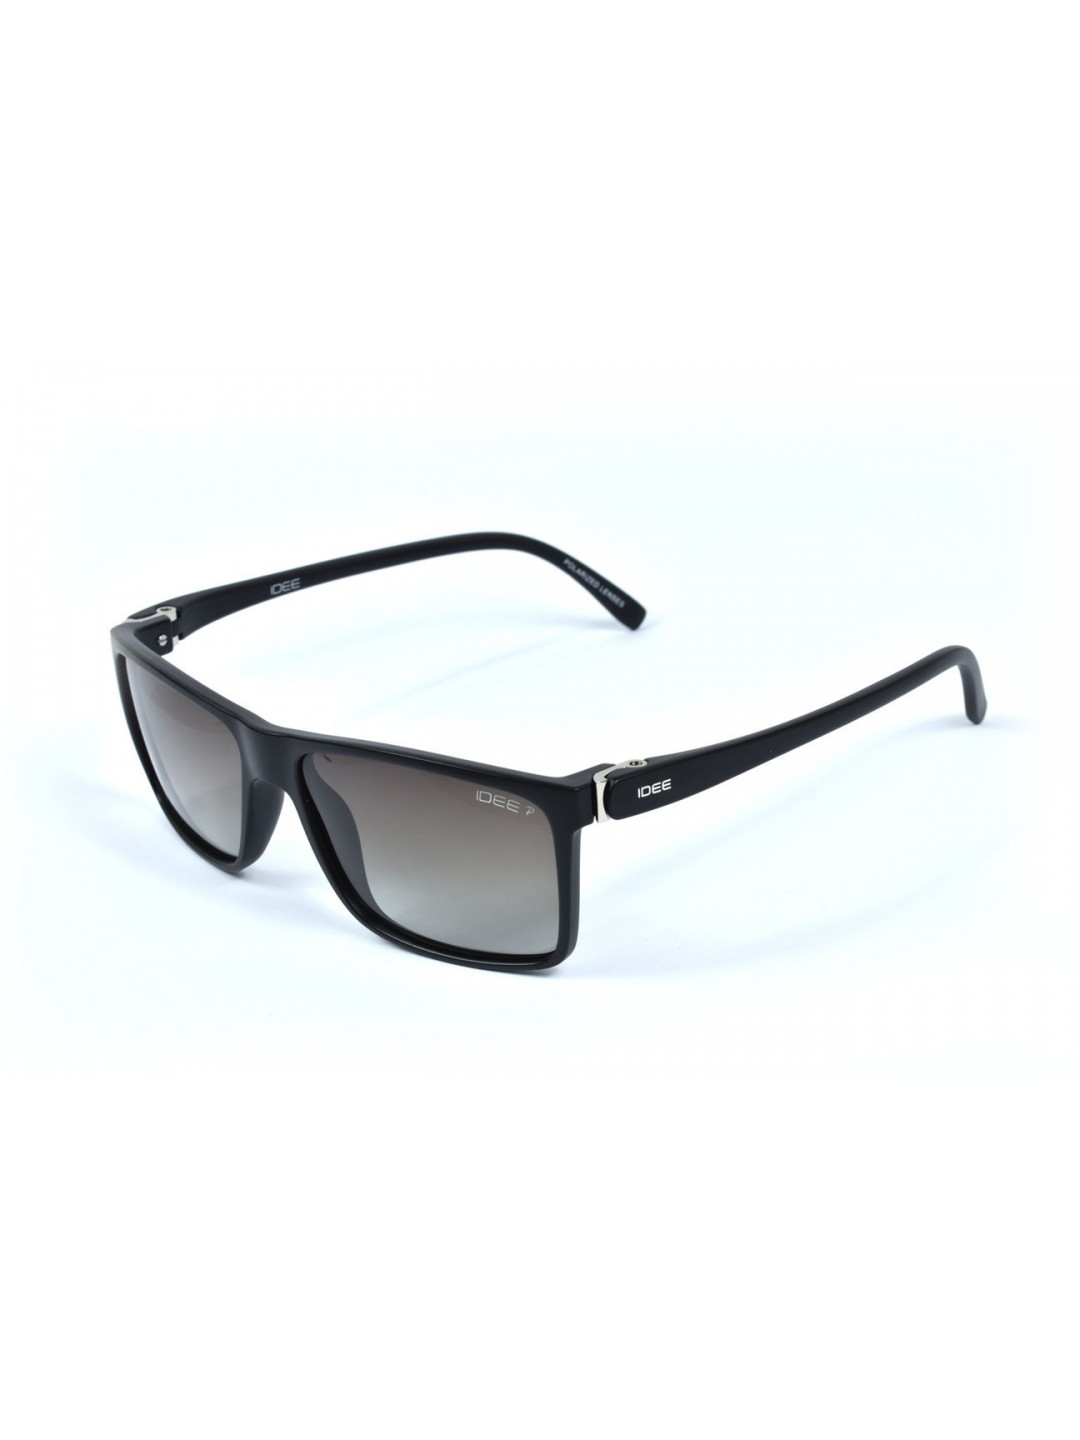 IDEE ID 2386 C2P Black Rectangle Full Frame With Acetate